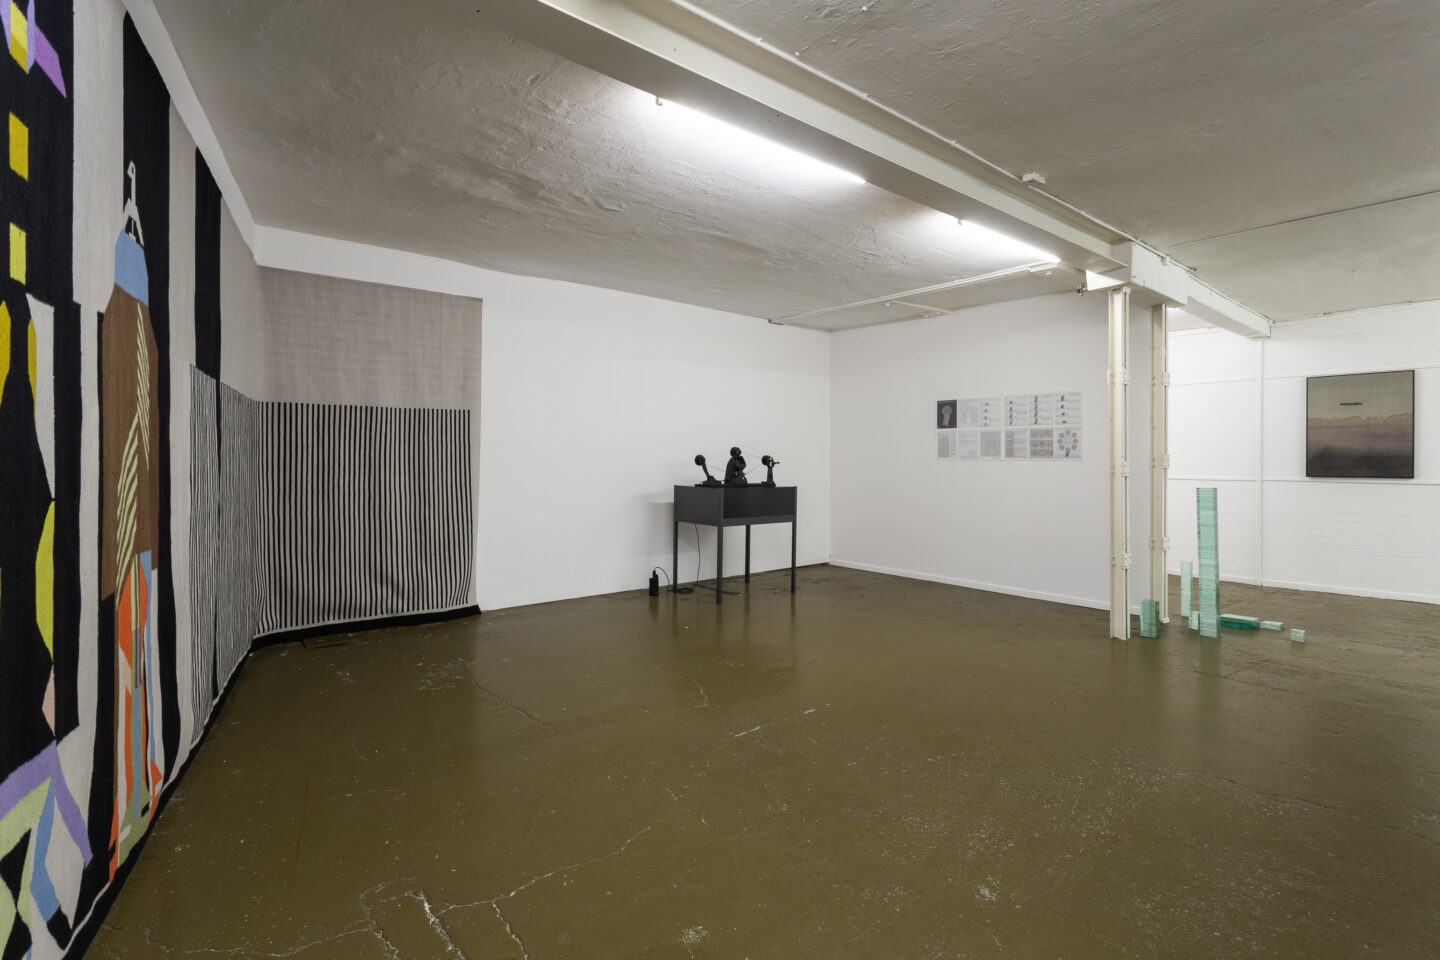 Exhibition View Groupshow «The Big Rip. Bounce, Chill or Crunch?» at Last Tango, Zurich, 2019 / Photo: Kilian Bannwart / Courtesy: the artist and Last Tango, Zurich